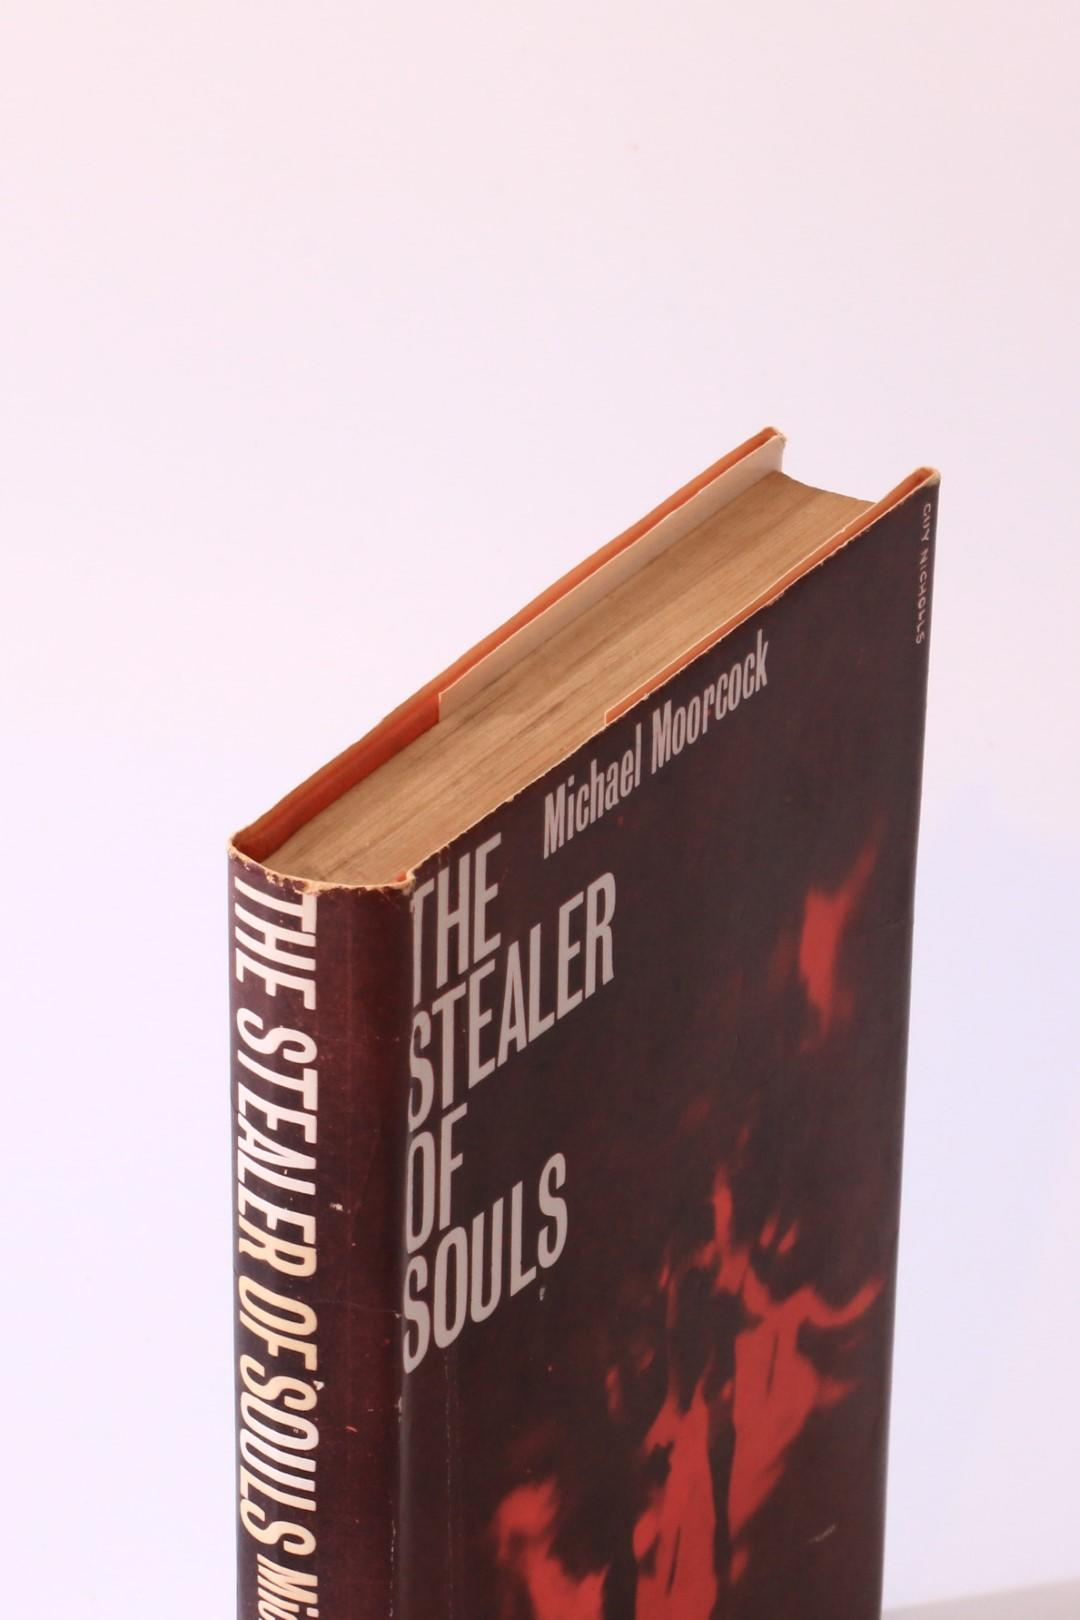 Michael Moorcock - The Stealer of Souls - Neville Spearman, 1963, First Edition.